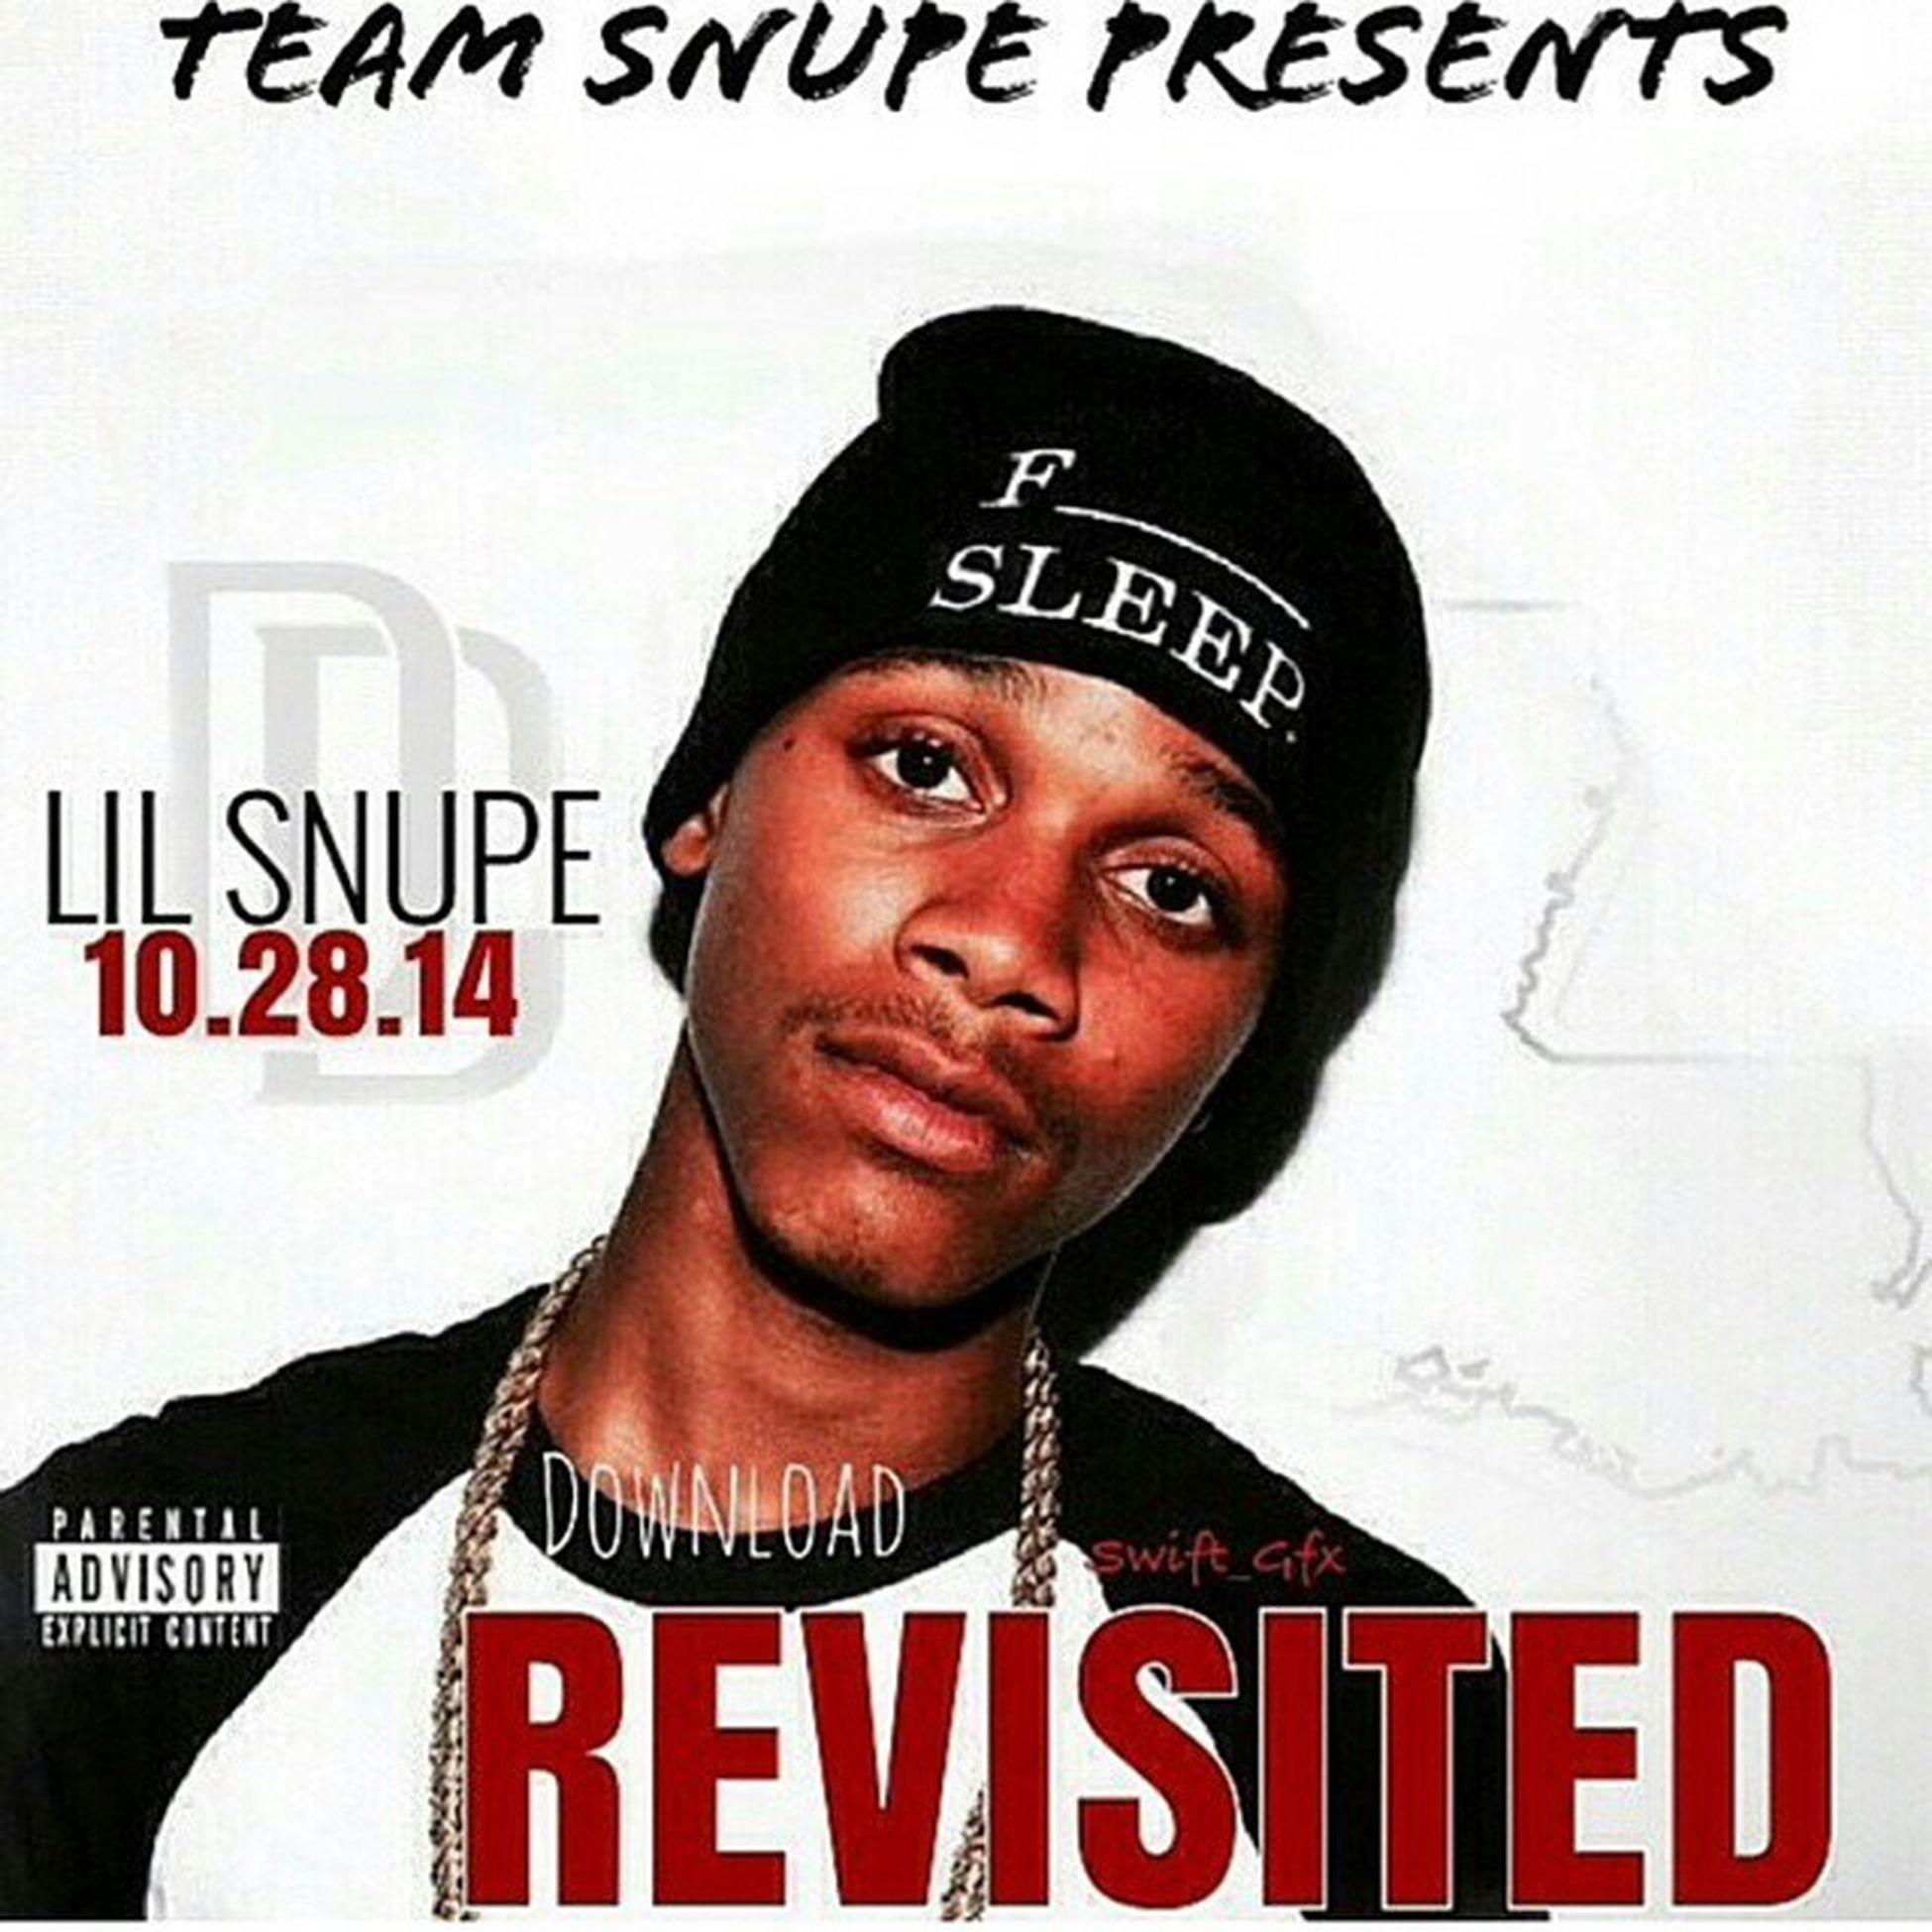 Lil Snupe RNIC REVISTED DROPS 10/28/14 on iTunes. R I P to a real one? Lilsnupe Zone4 Jonesboro